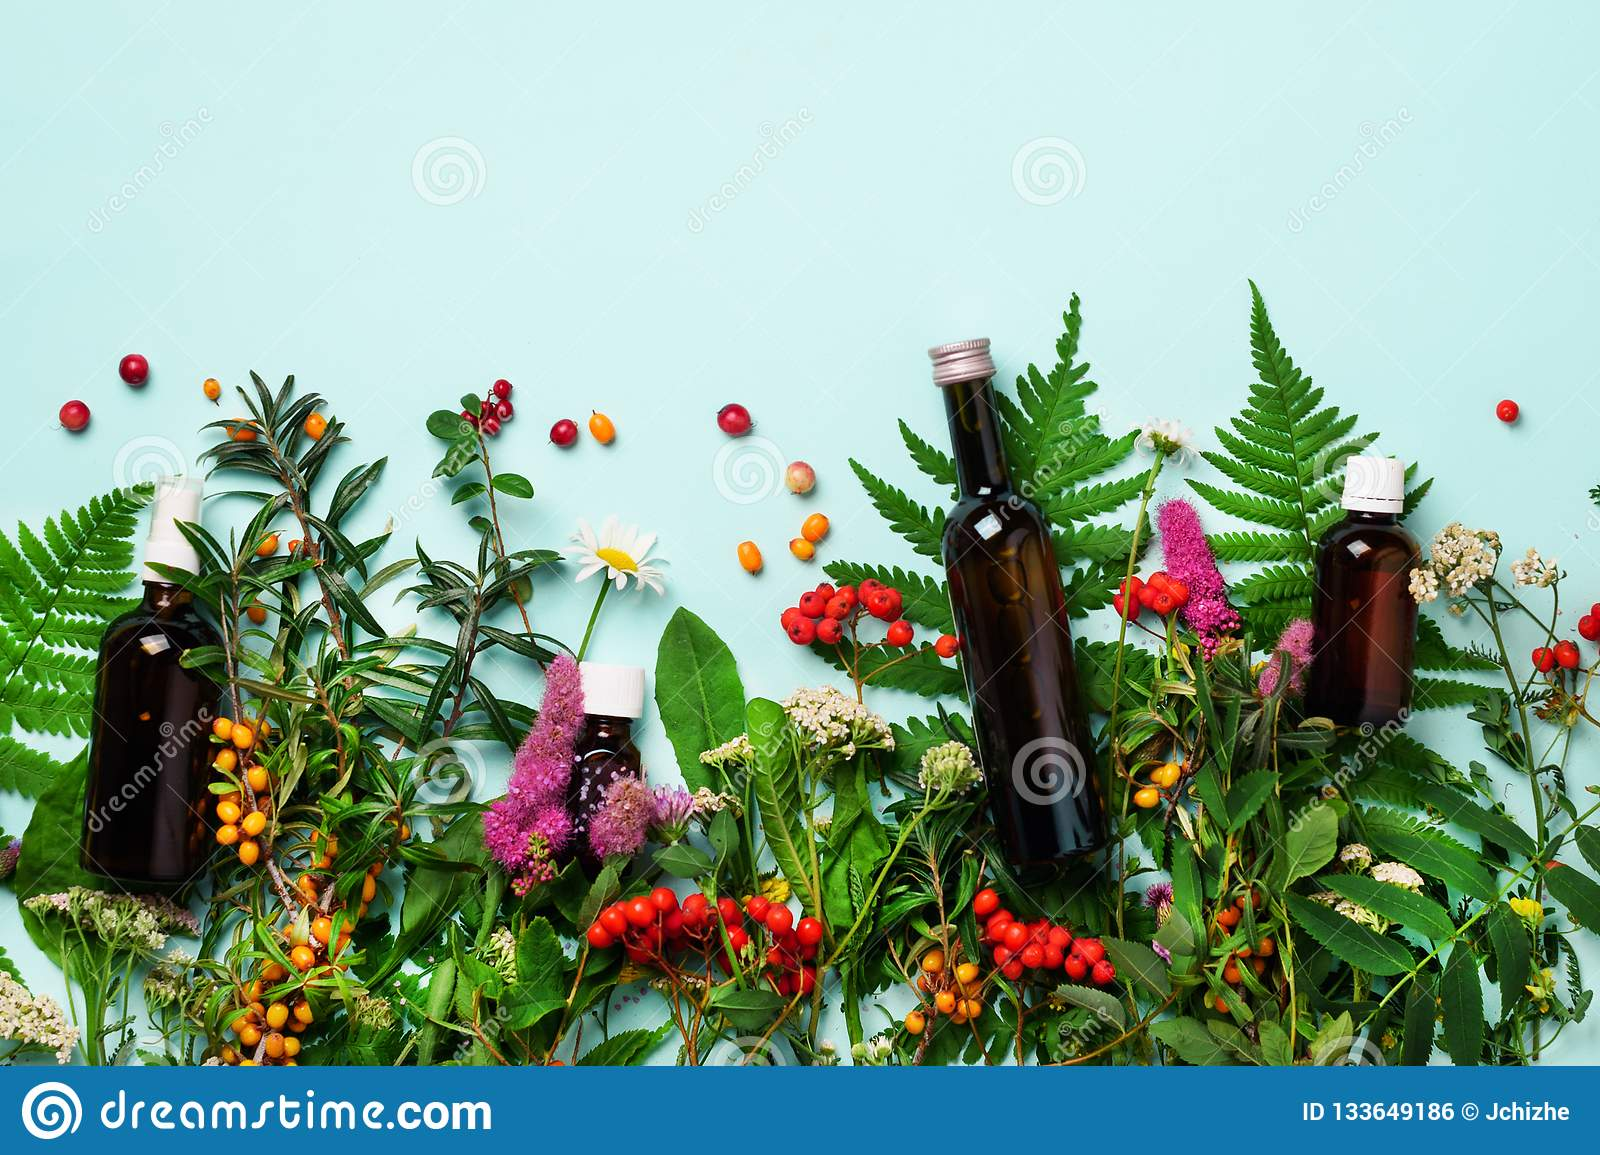 Essential oils in dark glass bottles and healing flowers, herbs on blue background. Holistic medicine approach. Healthy food